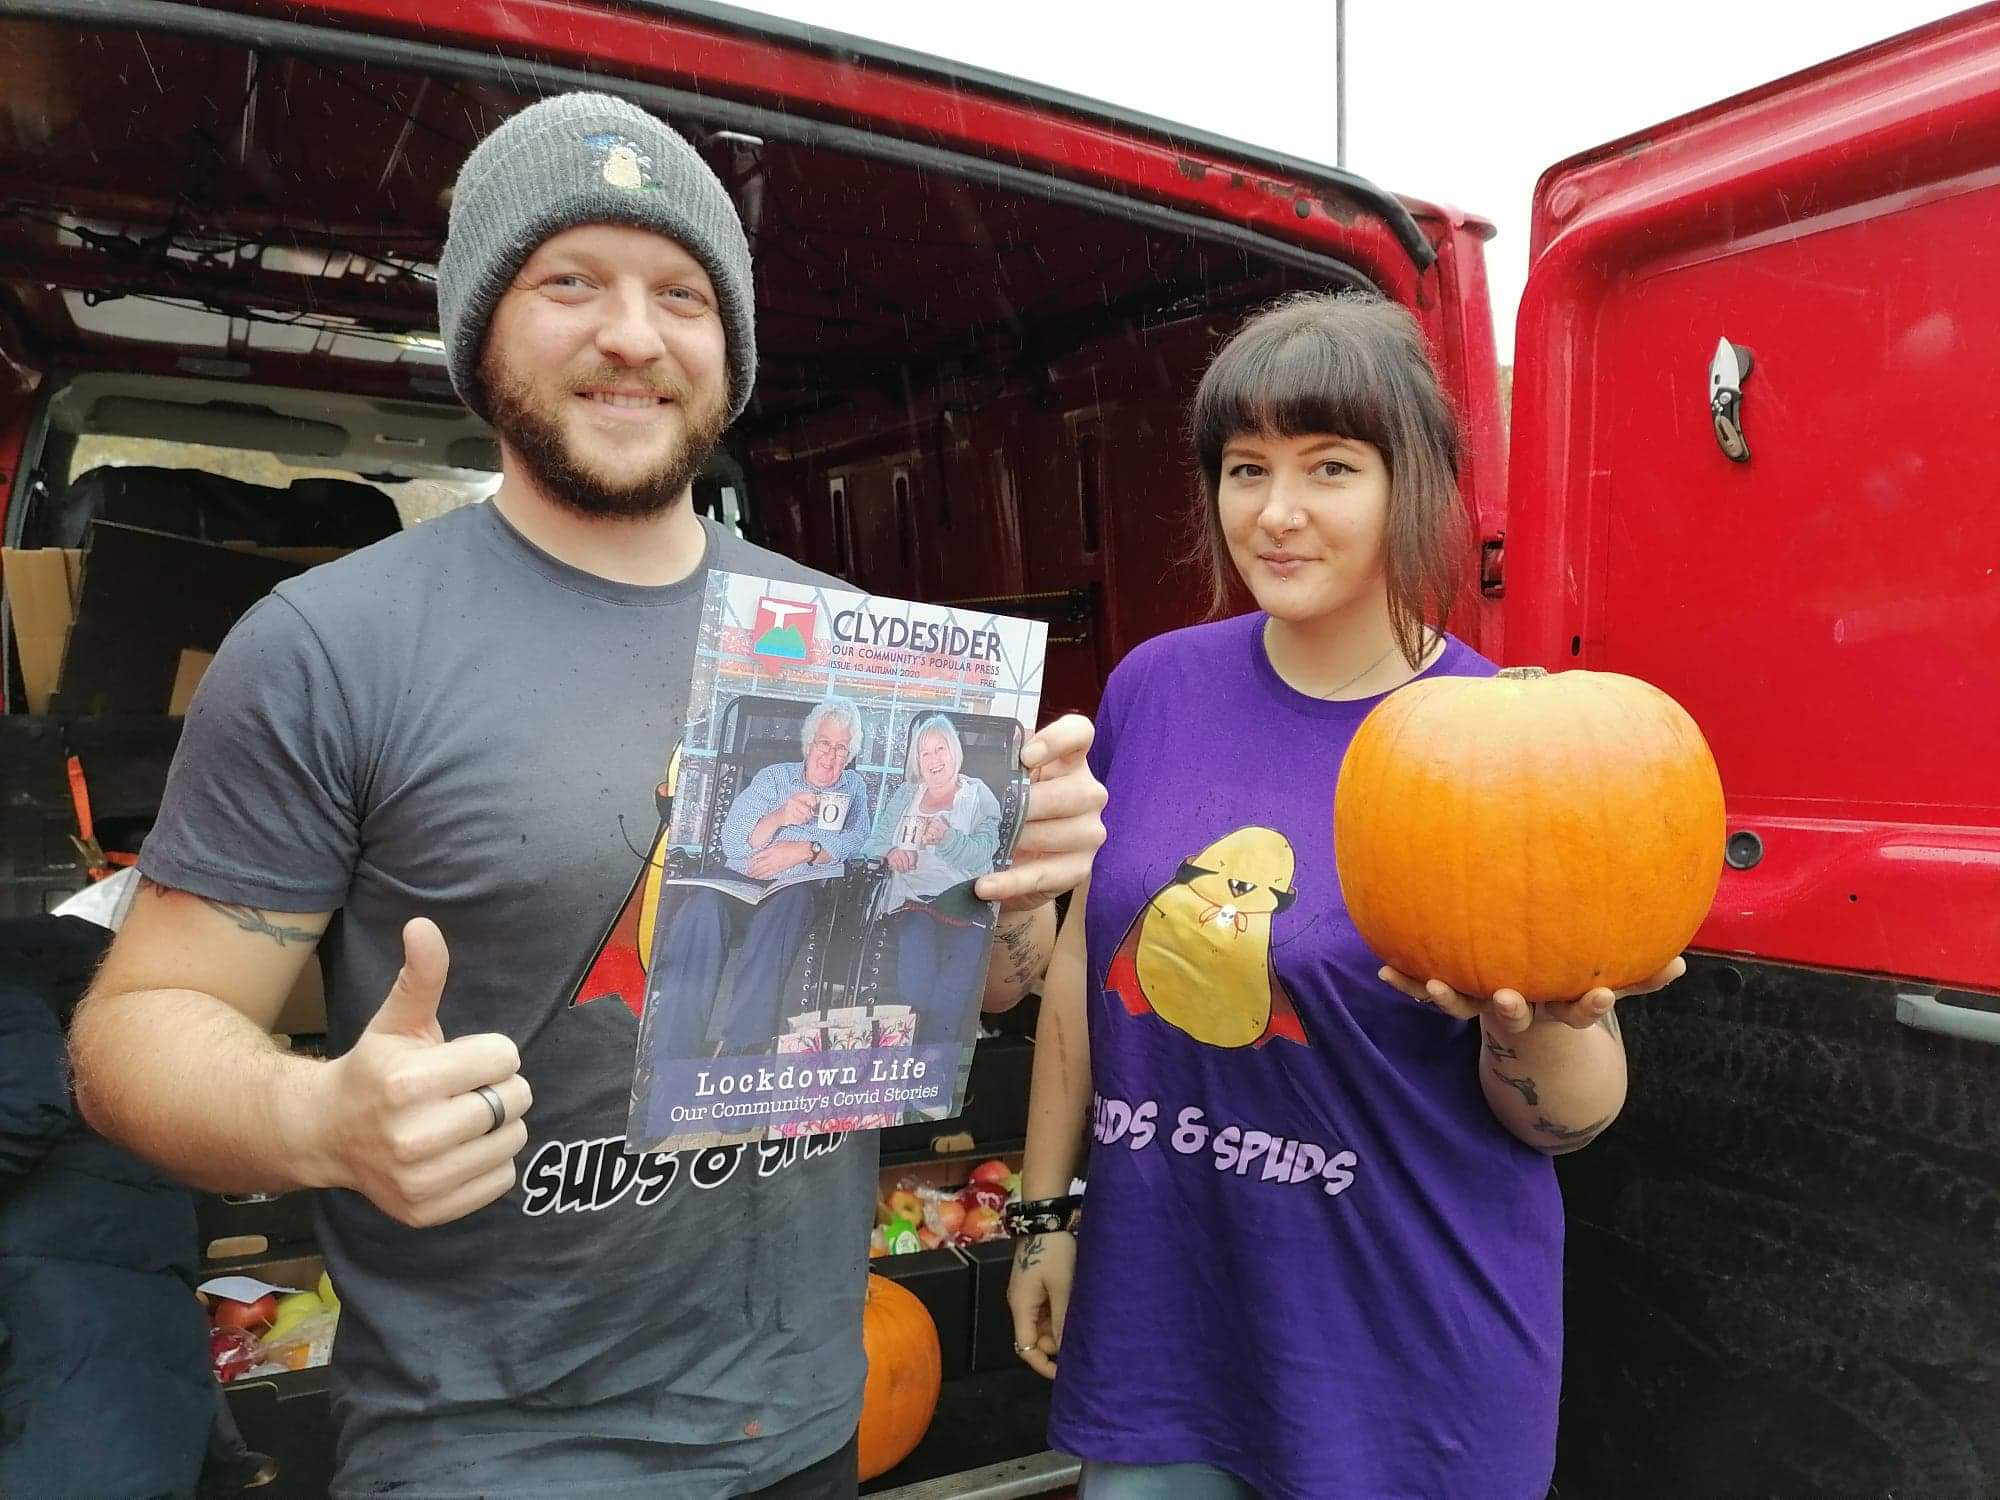 Creag and Laura from Suds and Spuds with a copy of Clydesider and a pumpkin